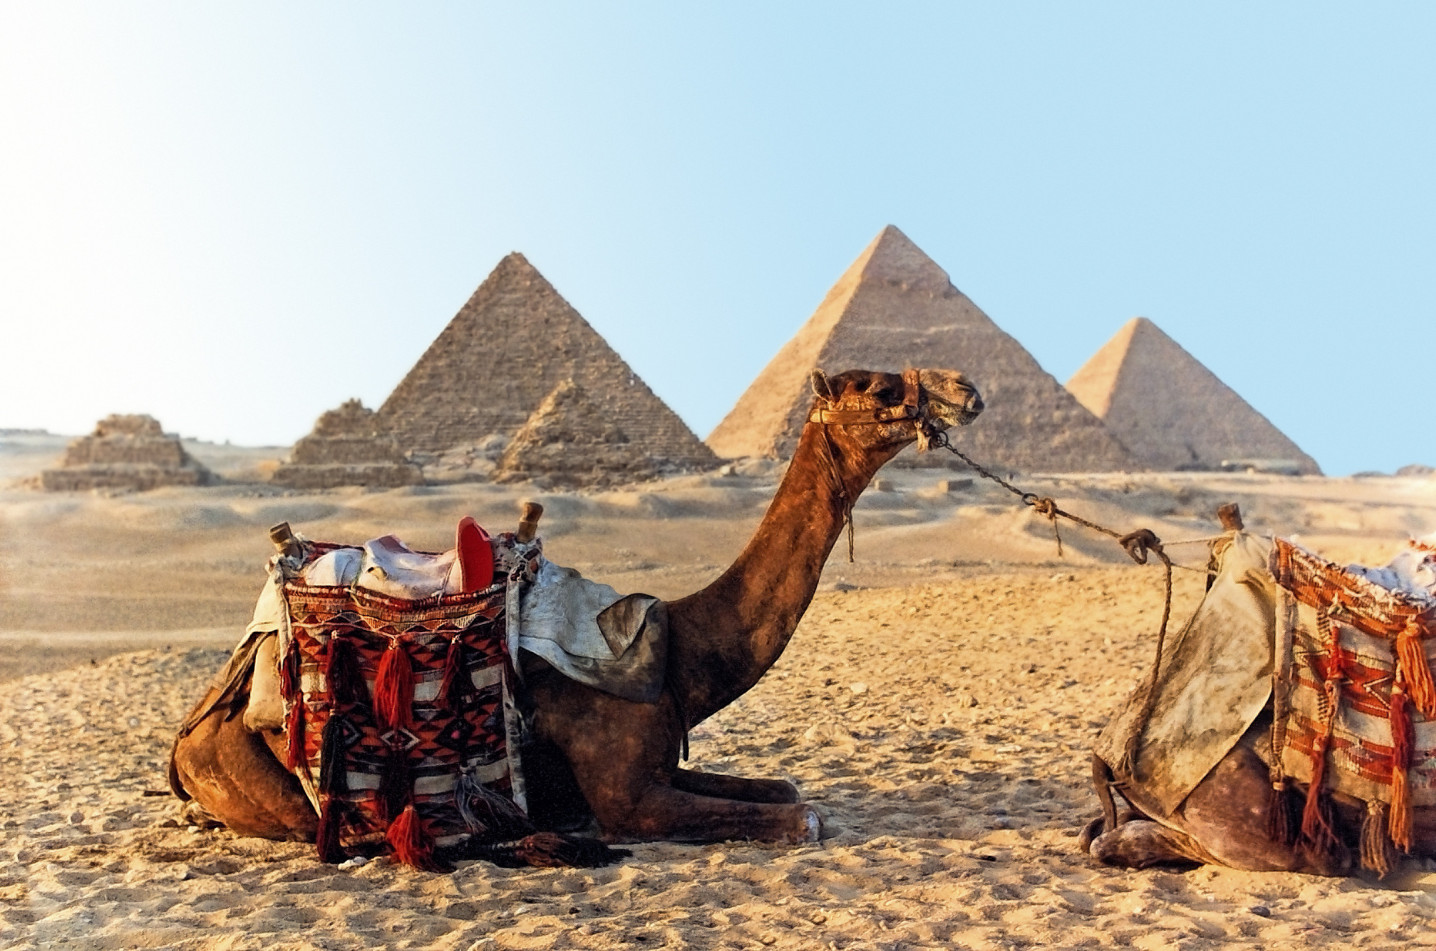 10 Days Cairo Nile Cruise Alexandria tour - 5 stars accommodation